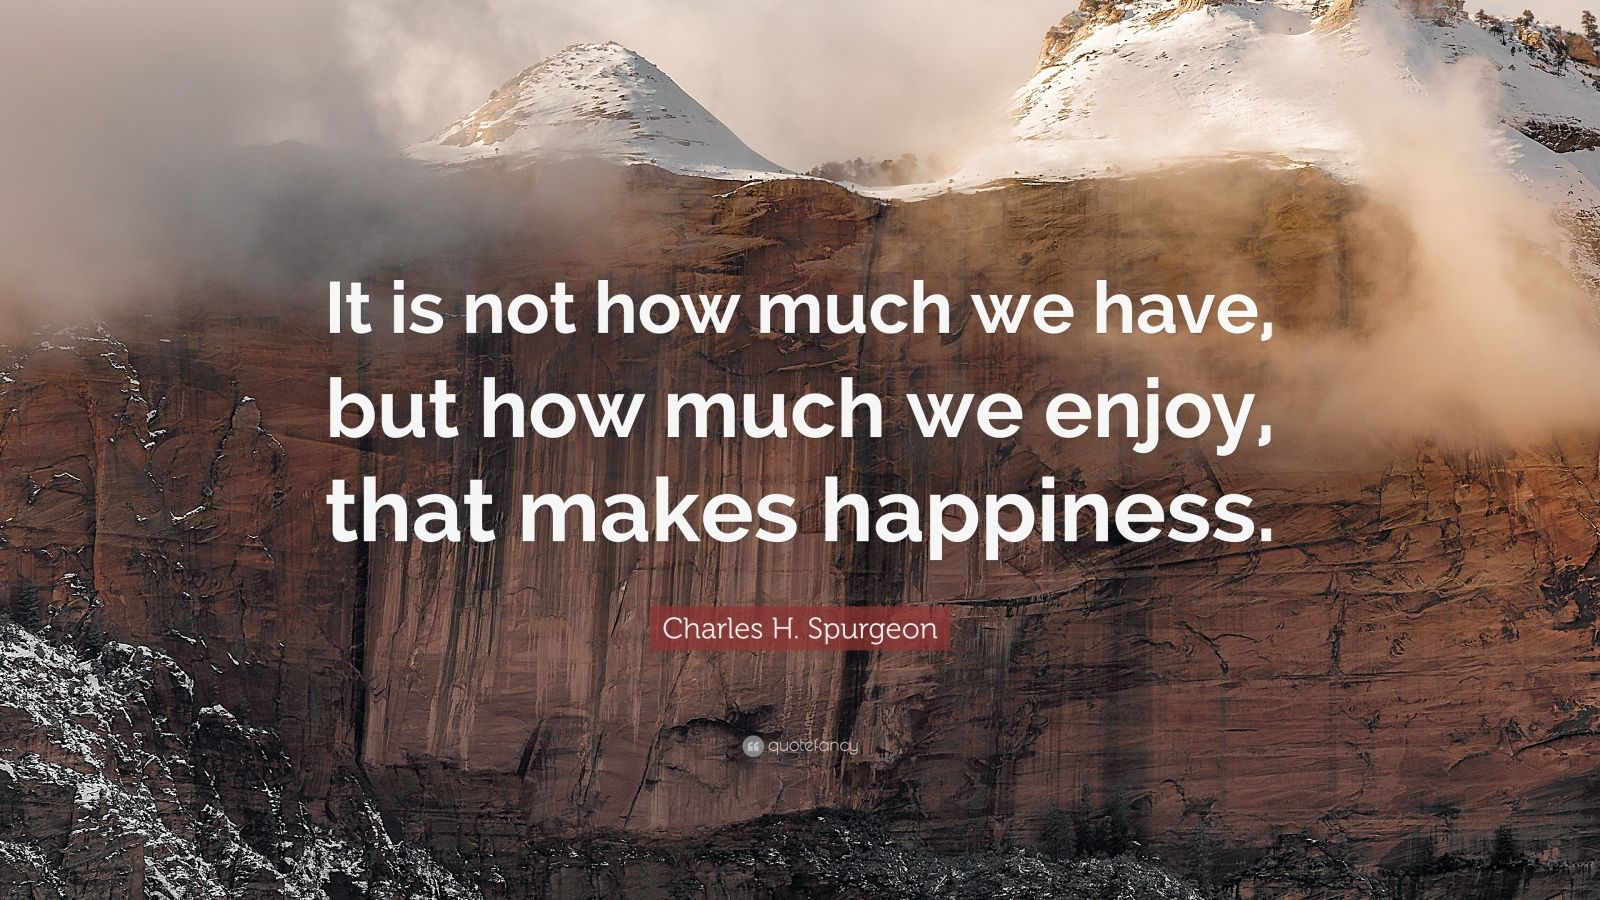 """Charles H. Spurgeon Quote: """"It is not how much we have, but how much we enjoy, that makes happiness."""""""